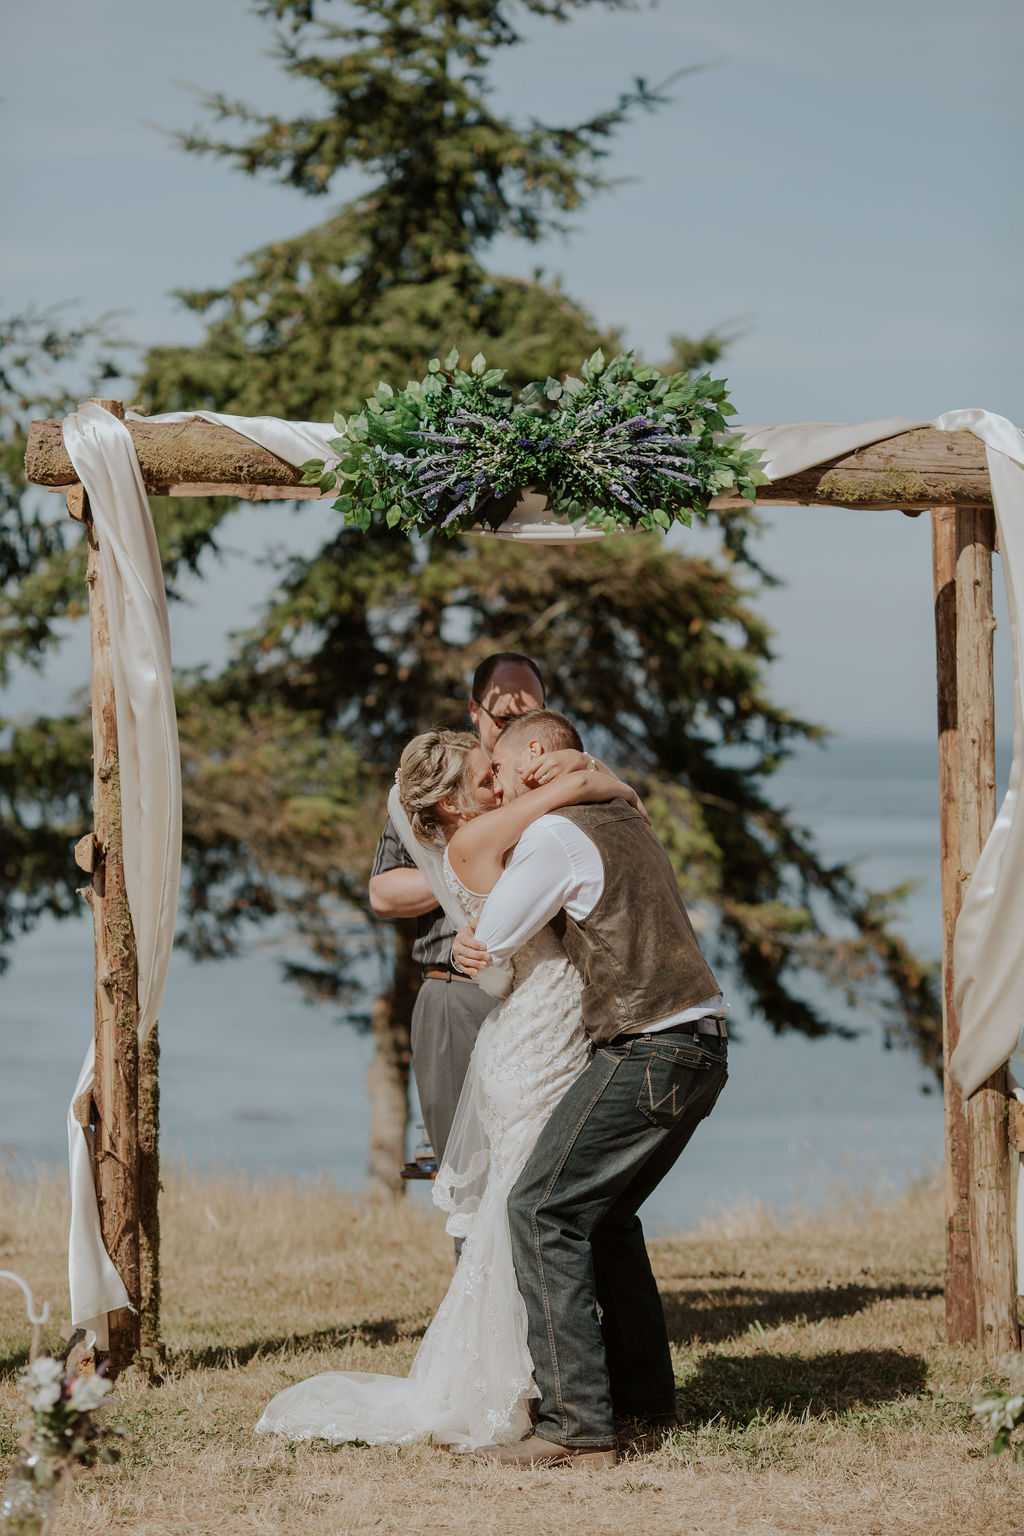 Port-Angeles-Wedding-Photographer-pnw-Whiskey-Creek-Beach-NW-Washington-couples-kayladawnphoto-kayla-dawn-photography-olympic-peninsula-hurricane-ridge-98.jpg